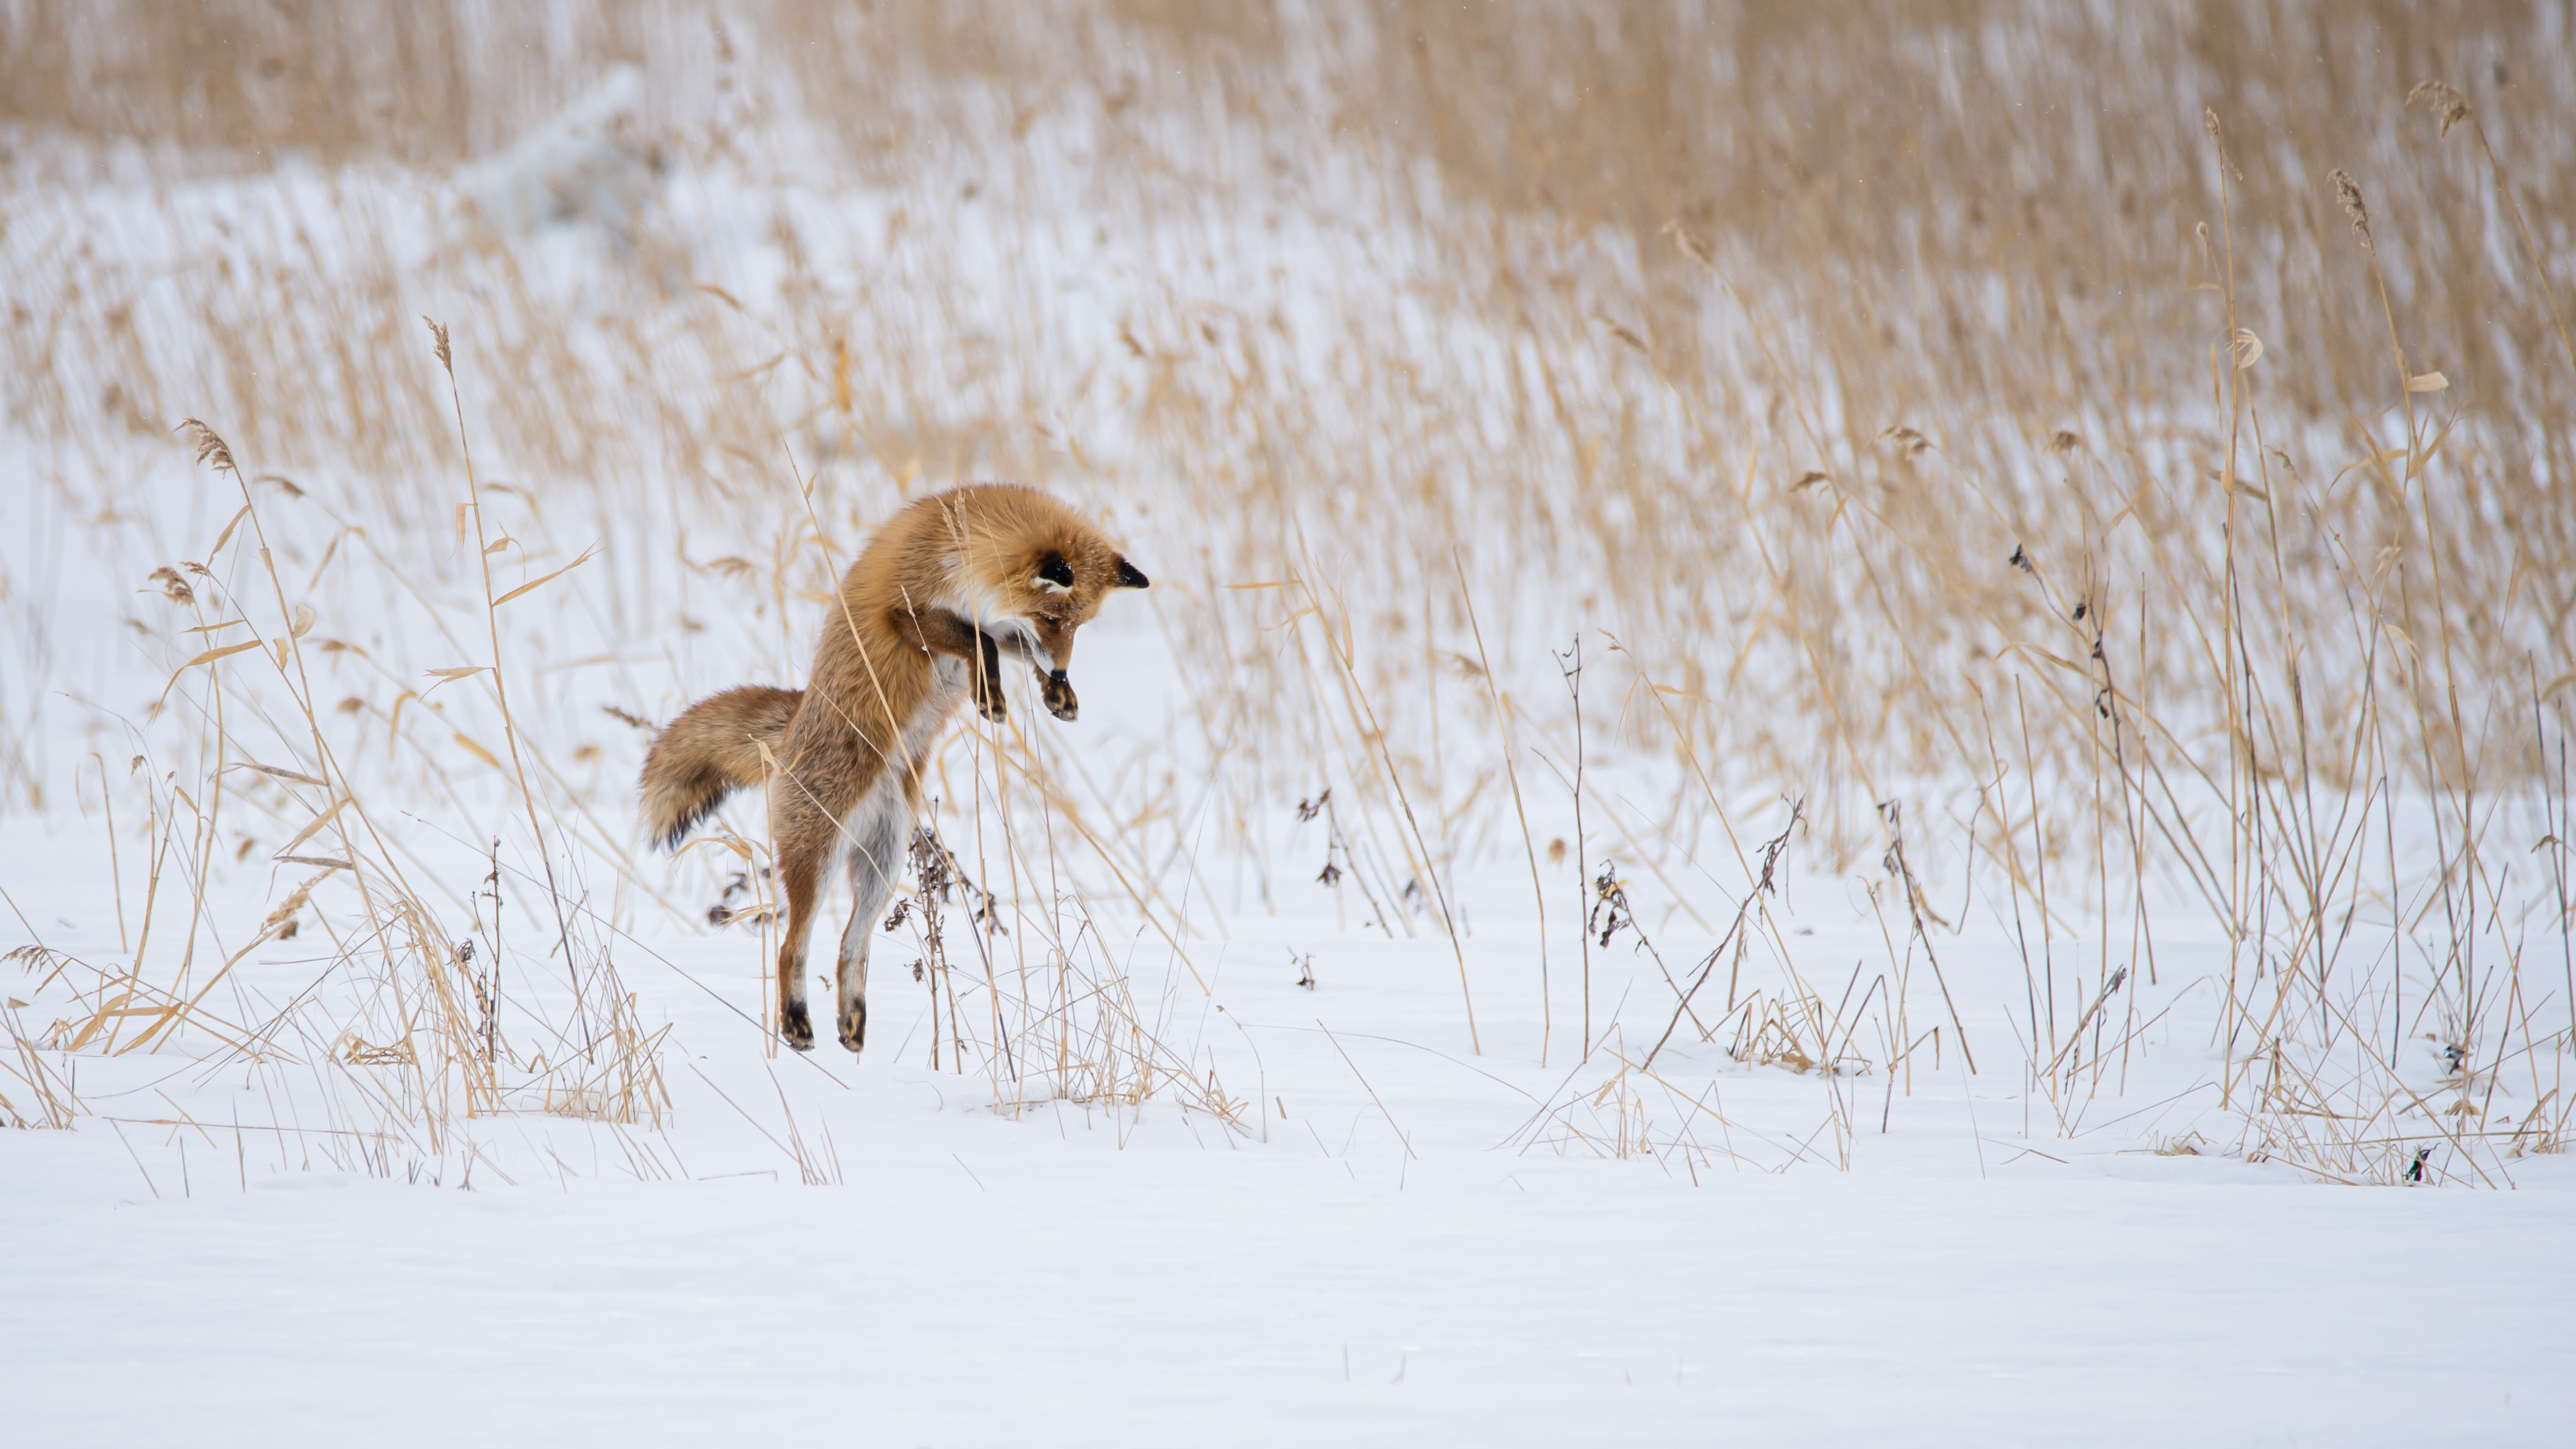 88413 download wallpaper Animals, Fox, Bounce, Jump, Hunting, Hunt, Animal, Snow, Winter screensavers and pictures for free